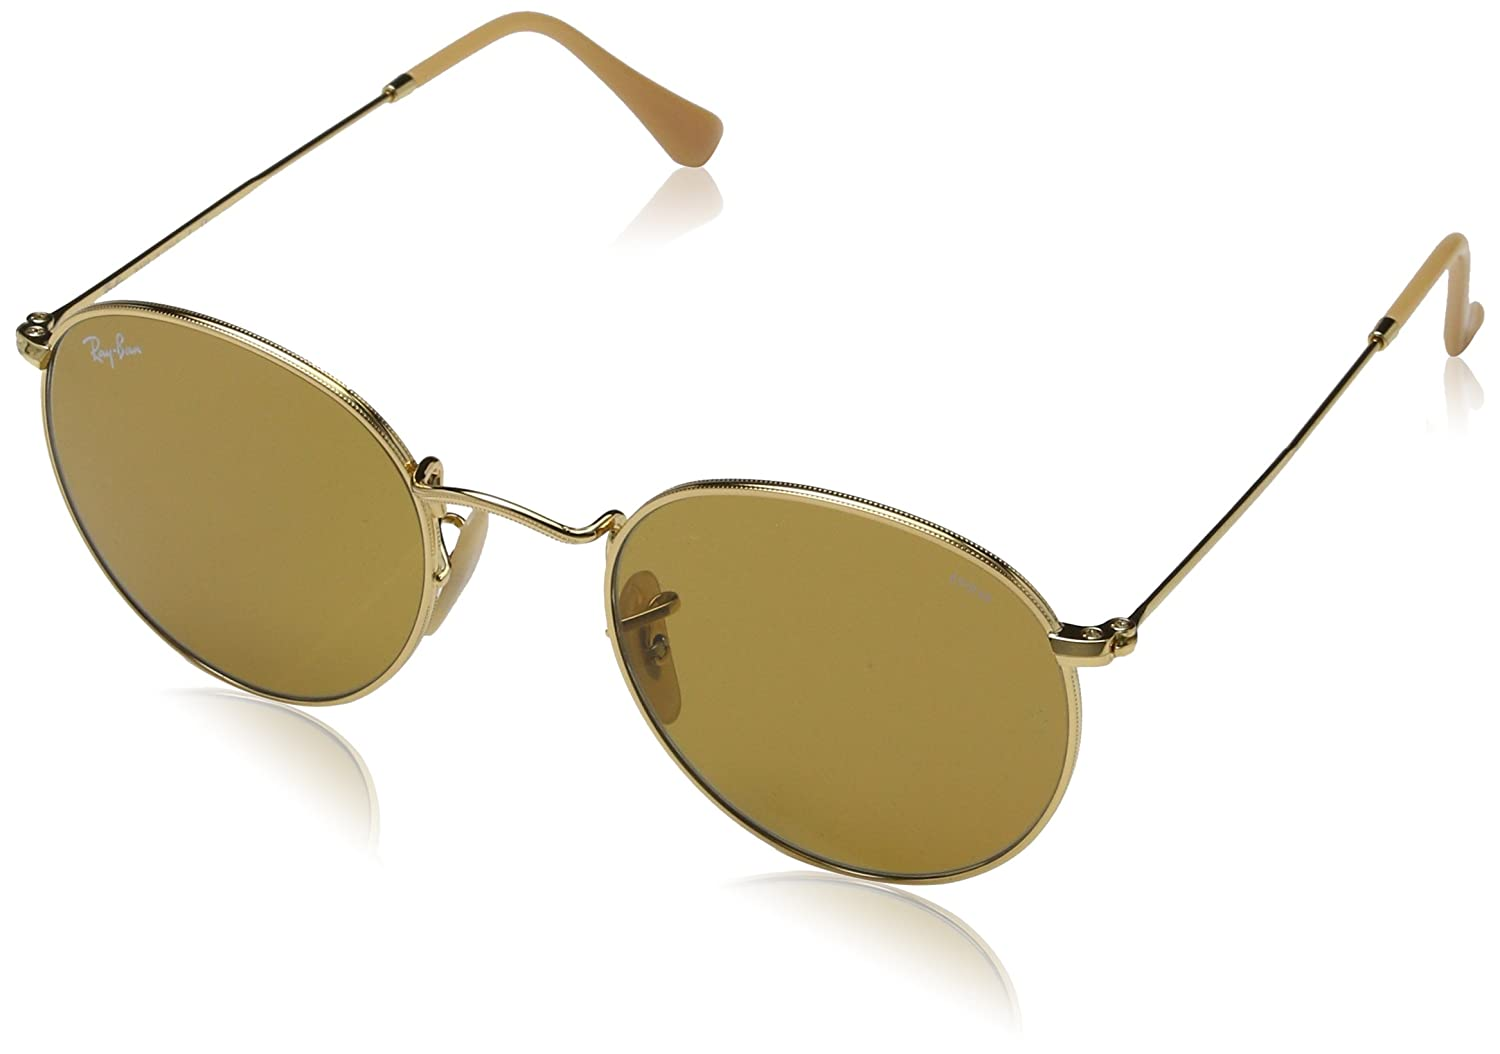 799dfde5f Amazon.com: Ray-Ban Men's Metal Man Sunglass Round, ARISTA, 52 mm: Ray-Ban:  Clothing